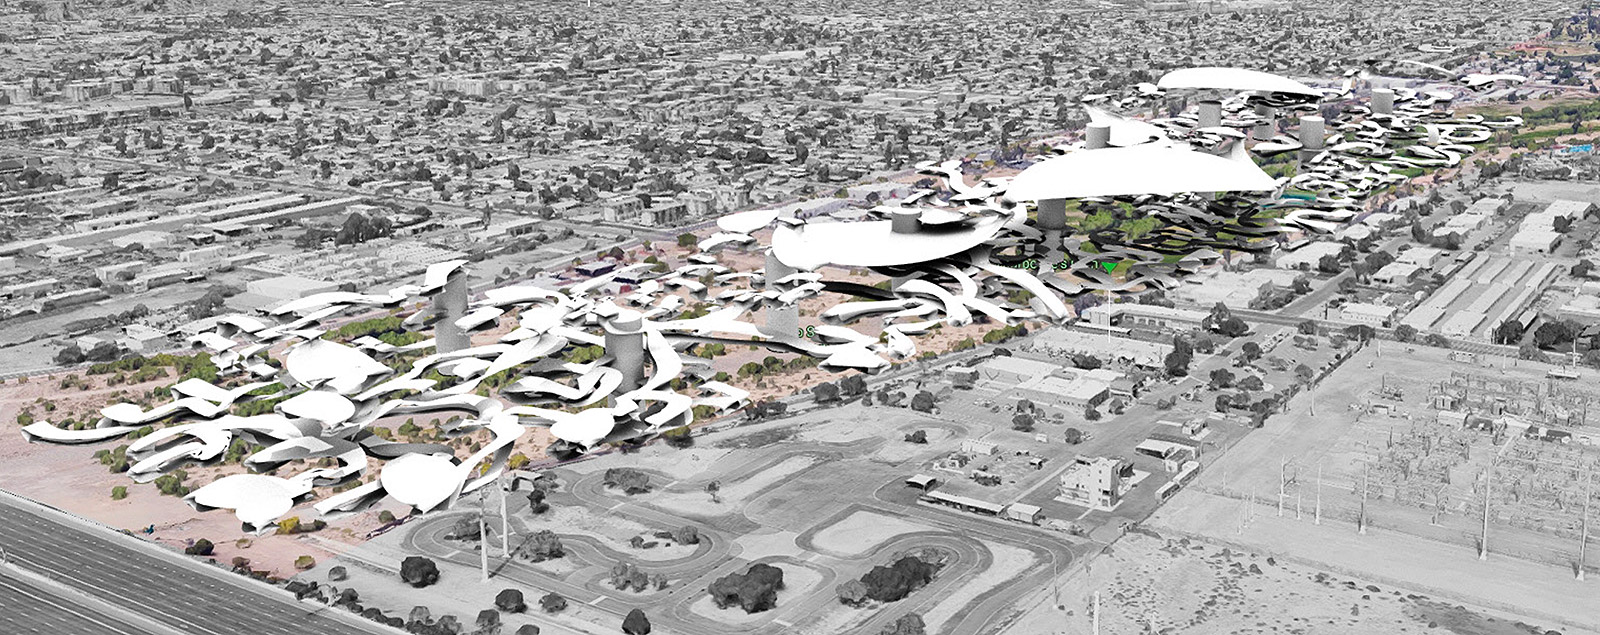 Regional aerial perspective of an early massing concept for housing forms blending with the landscape by student Brayan Munoz